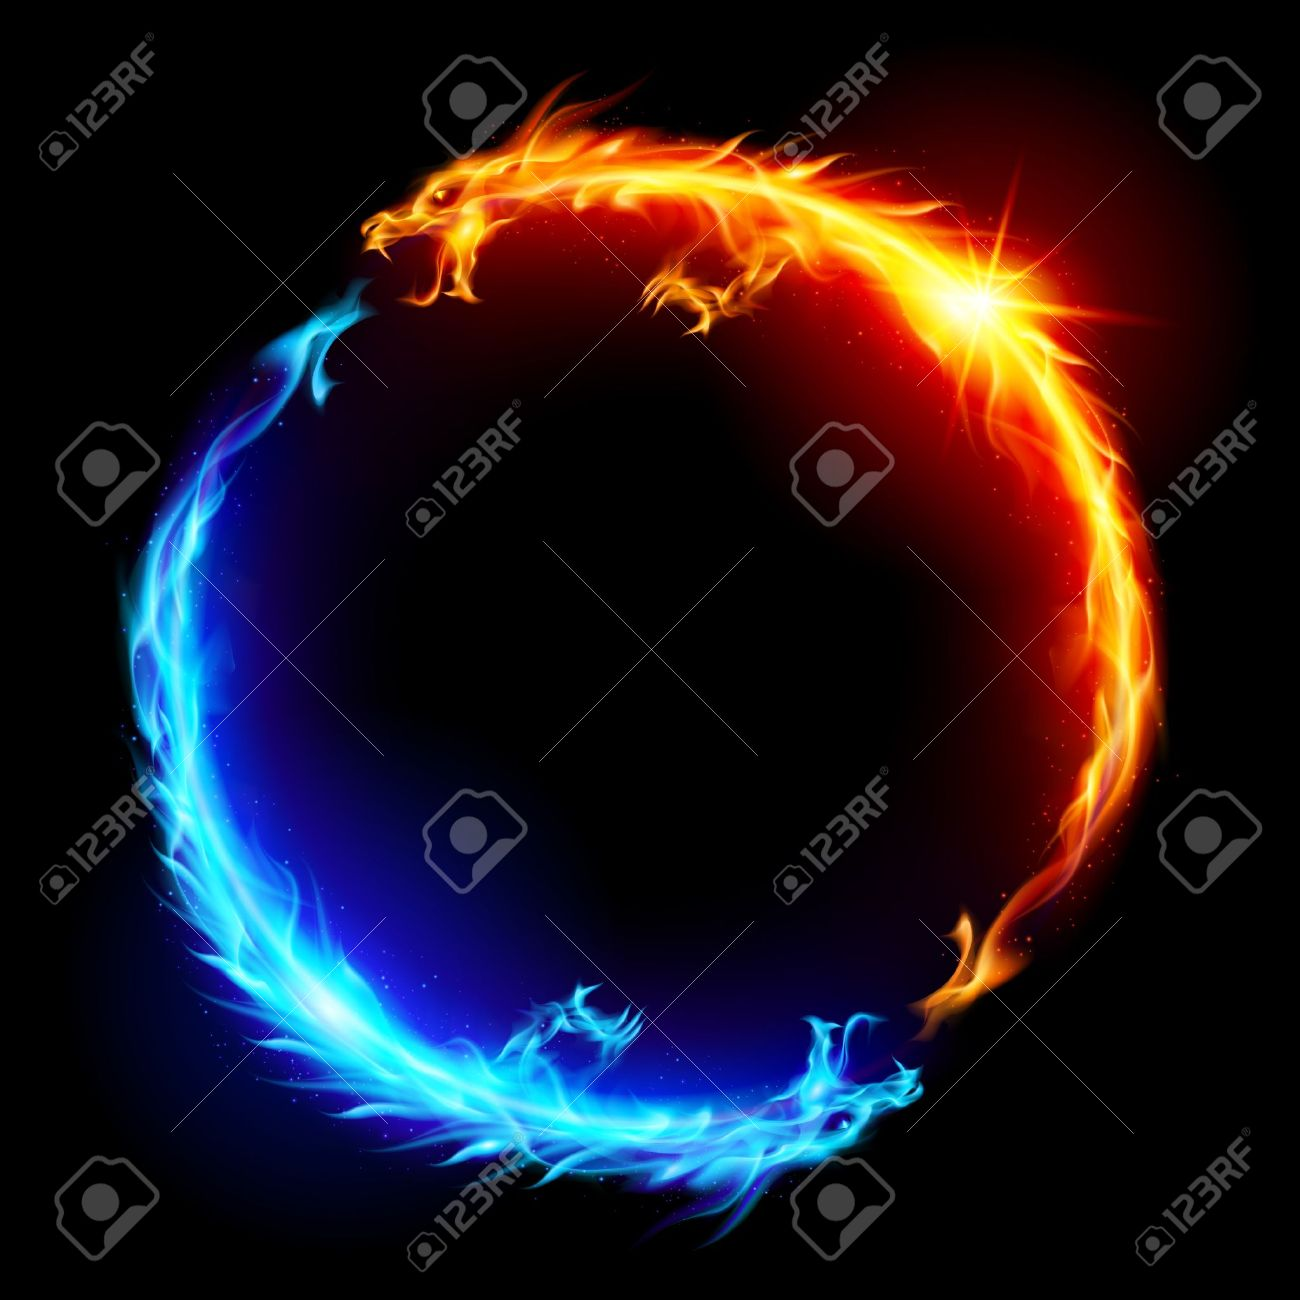 Ring of Blue and Red Fiery Dragons. Stock Vector - 13979508